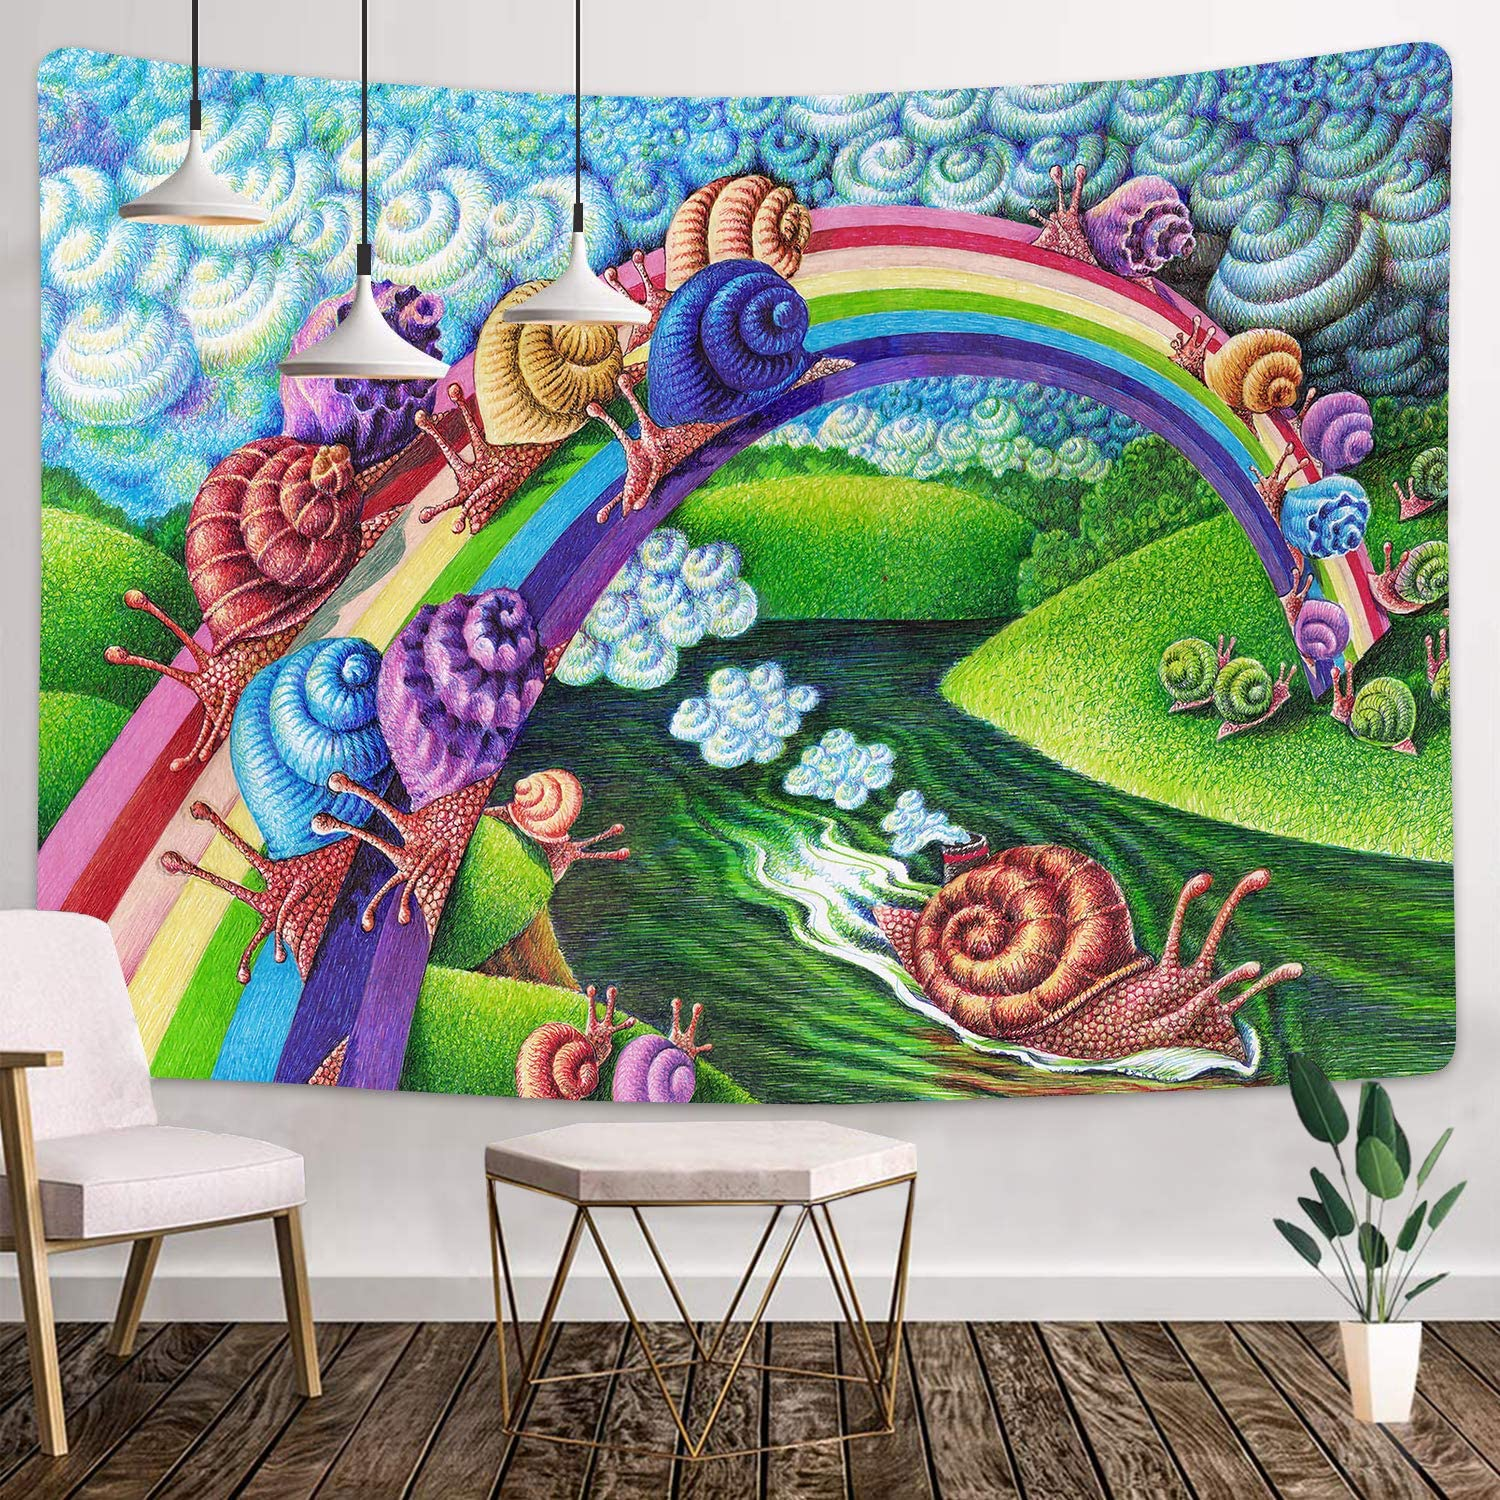 Psychedelic Tapestry 80x60 Inches Rainbow Bridge, Snails Art Tapestry Decor Wall Tapestry for Living Room Dorm Background Tapestries GTHXMT98